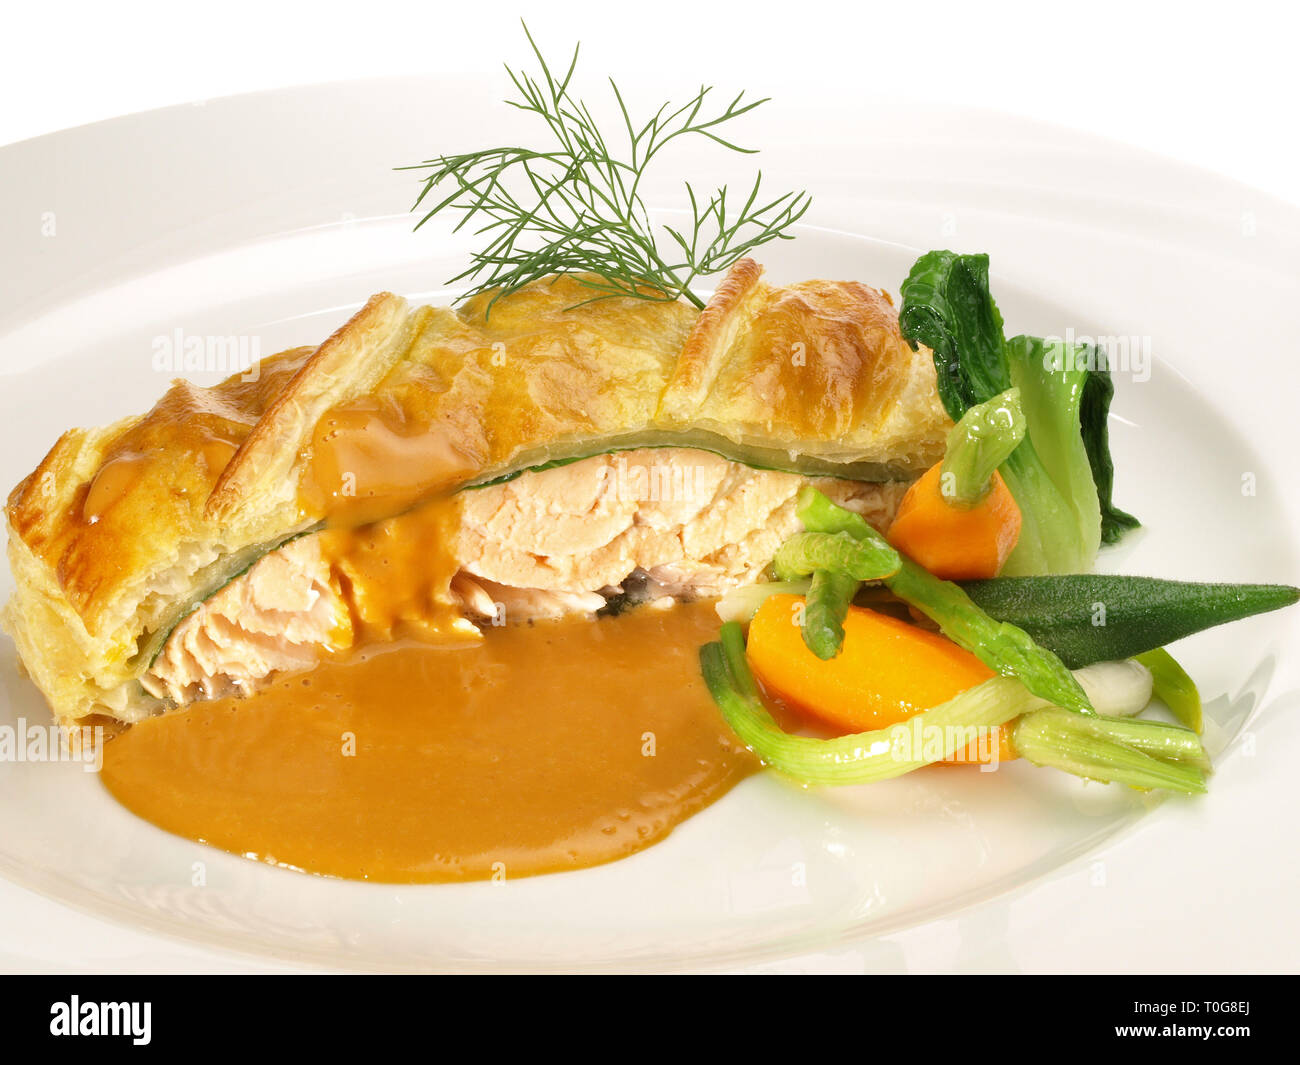 Salmon Fish Fillet in Puff Pastry Stock Photo